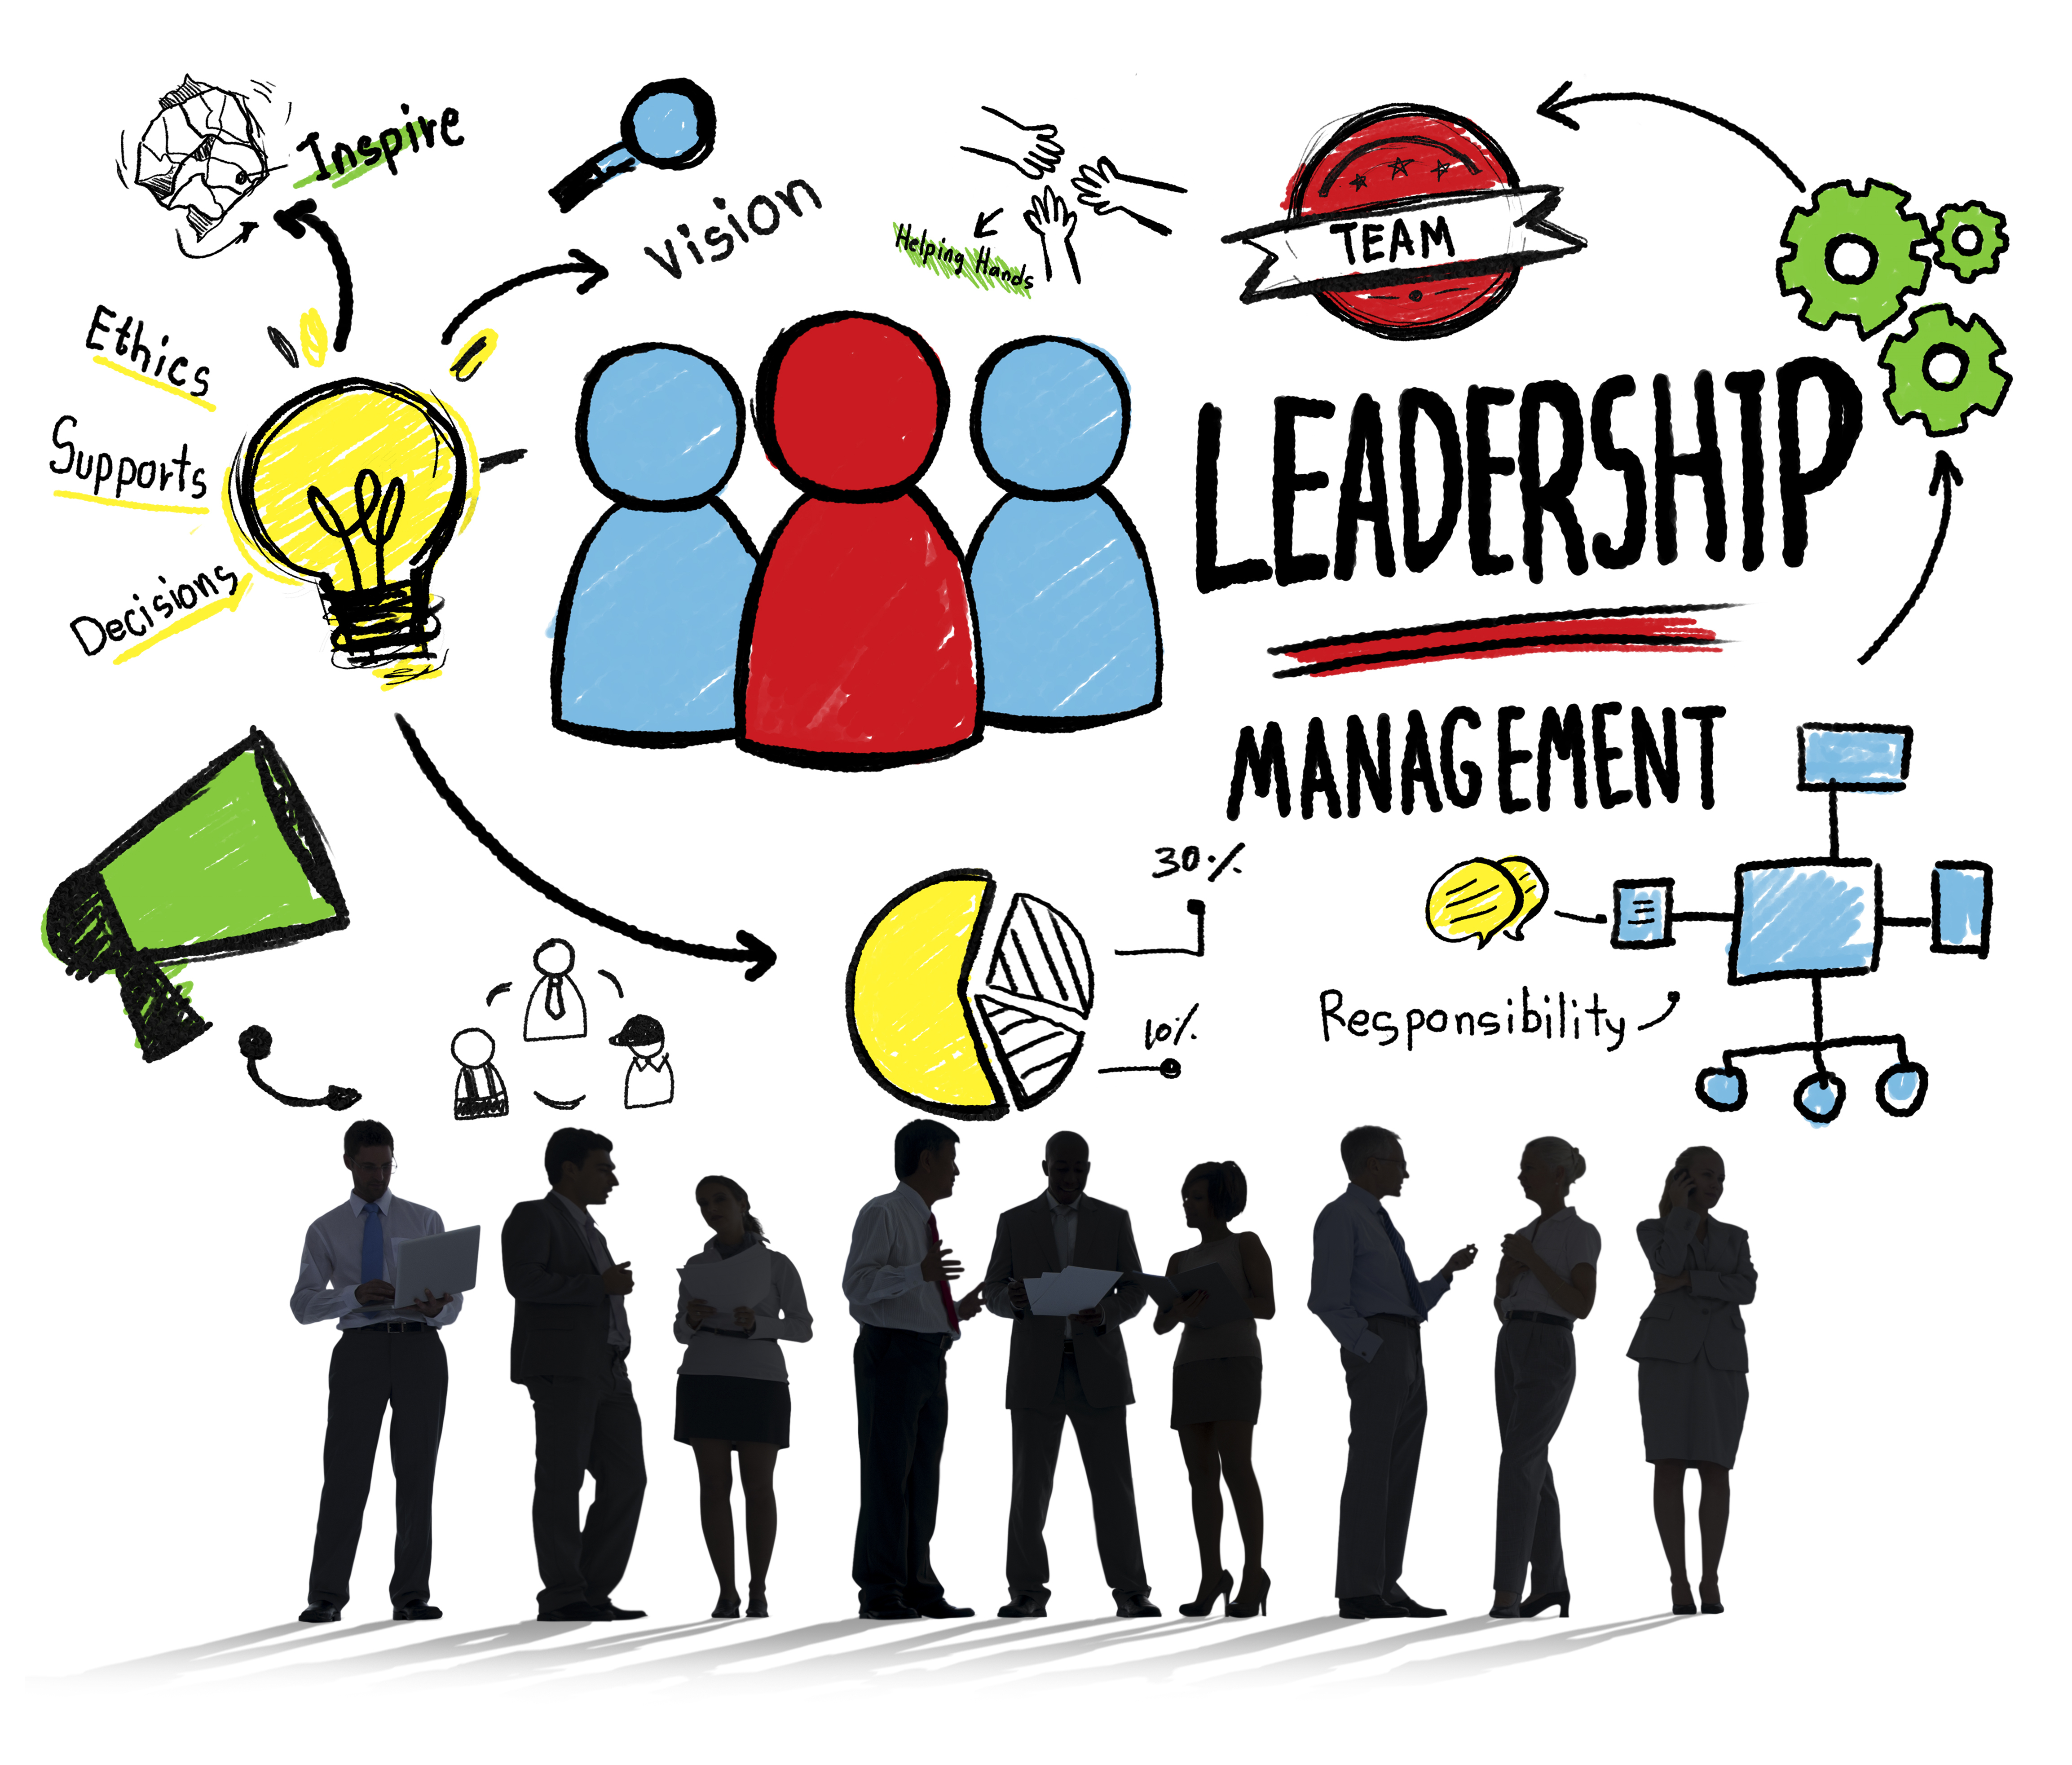 A Leadership and Management